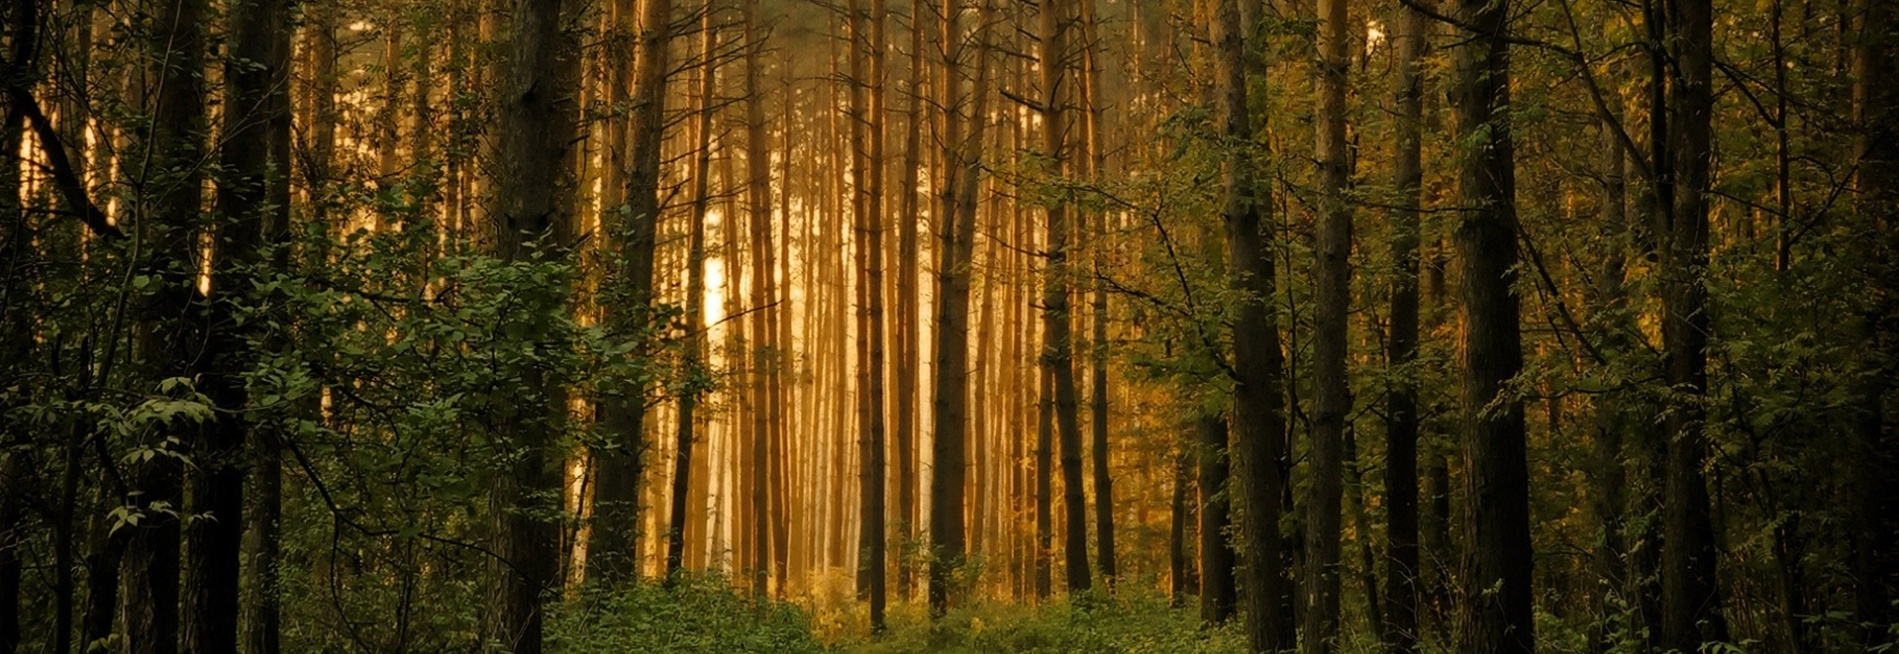 Bambo-Forests-Wallpapers